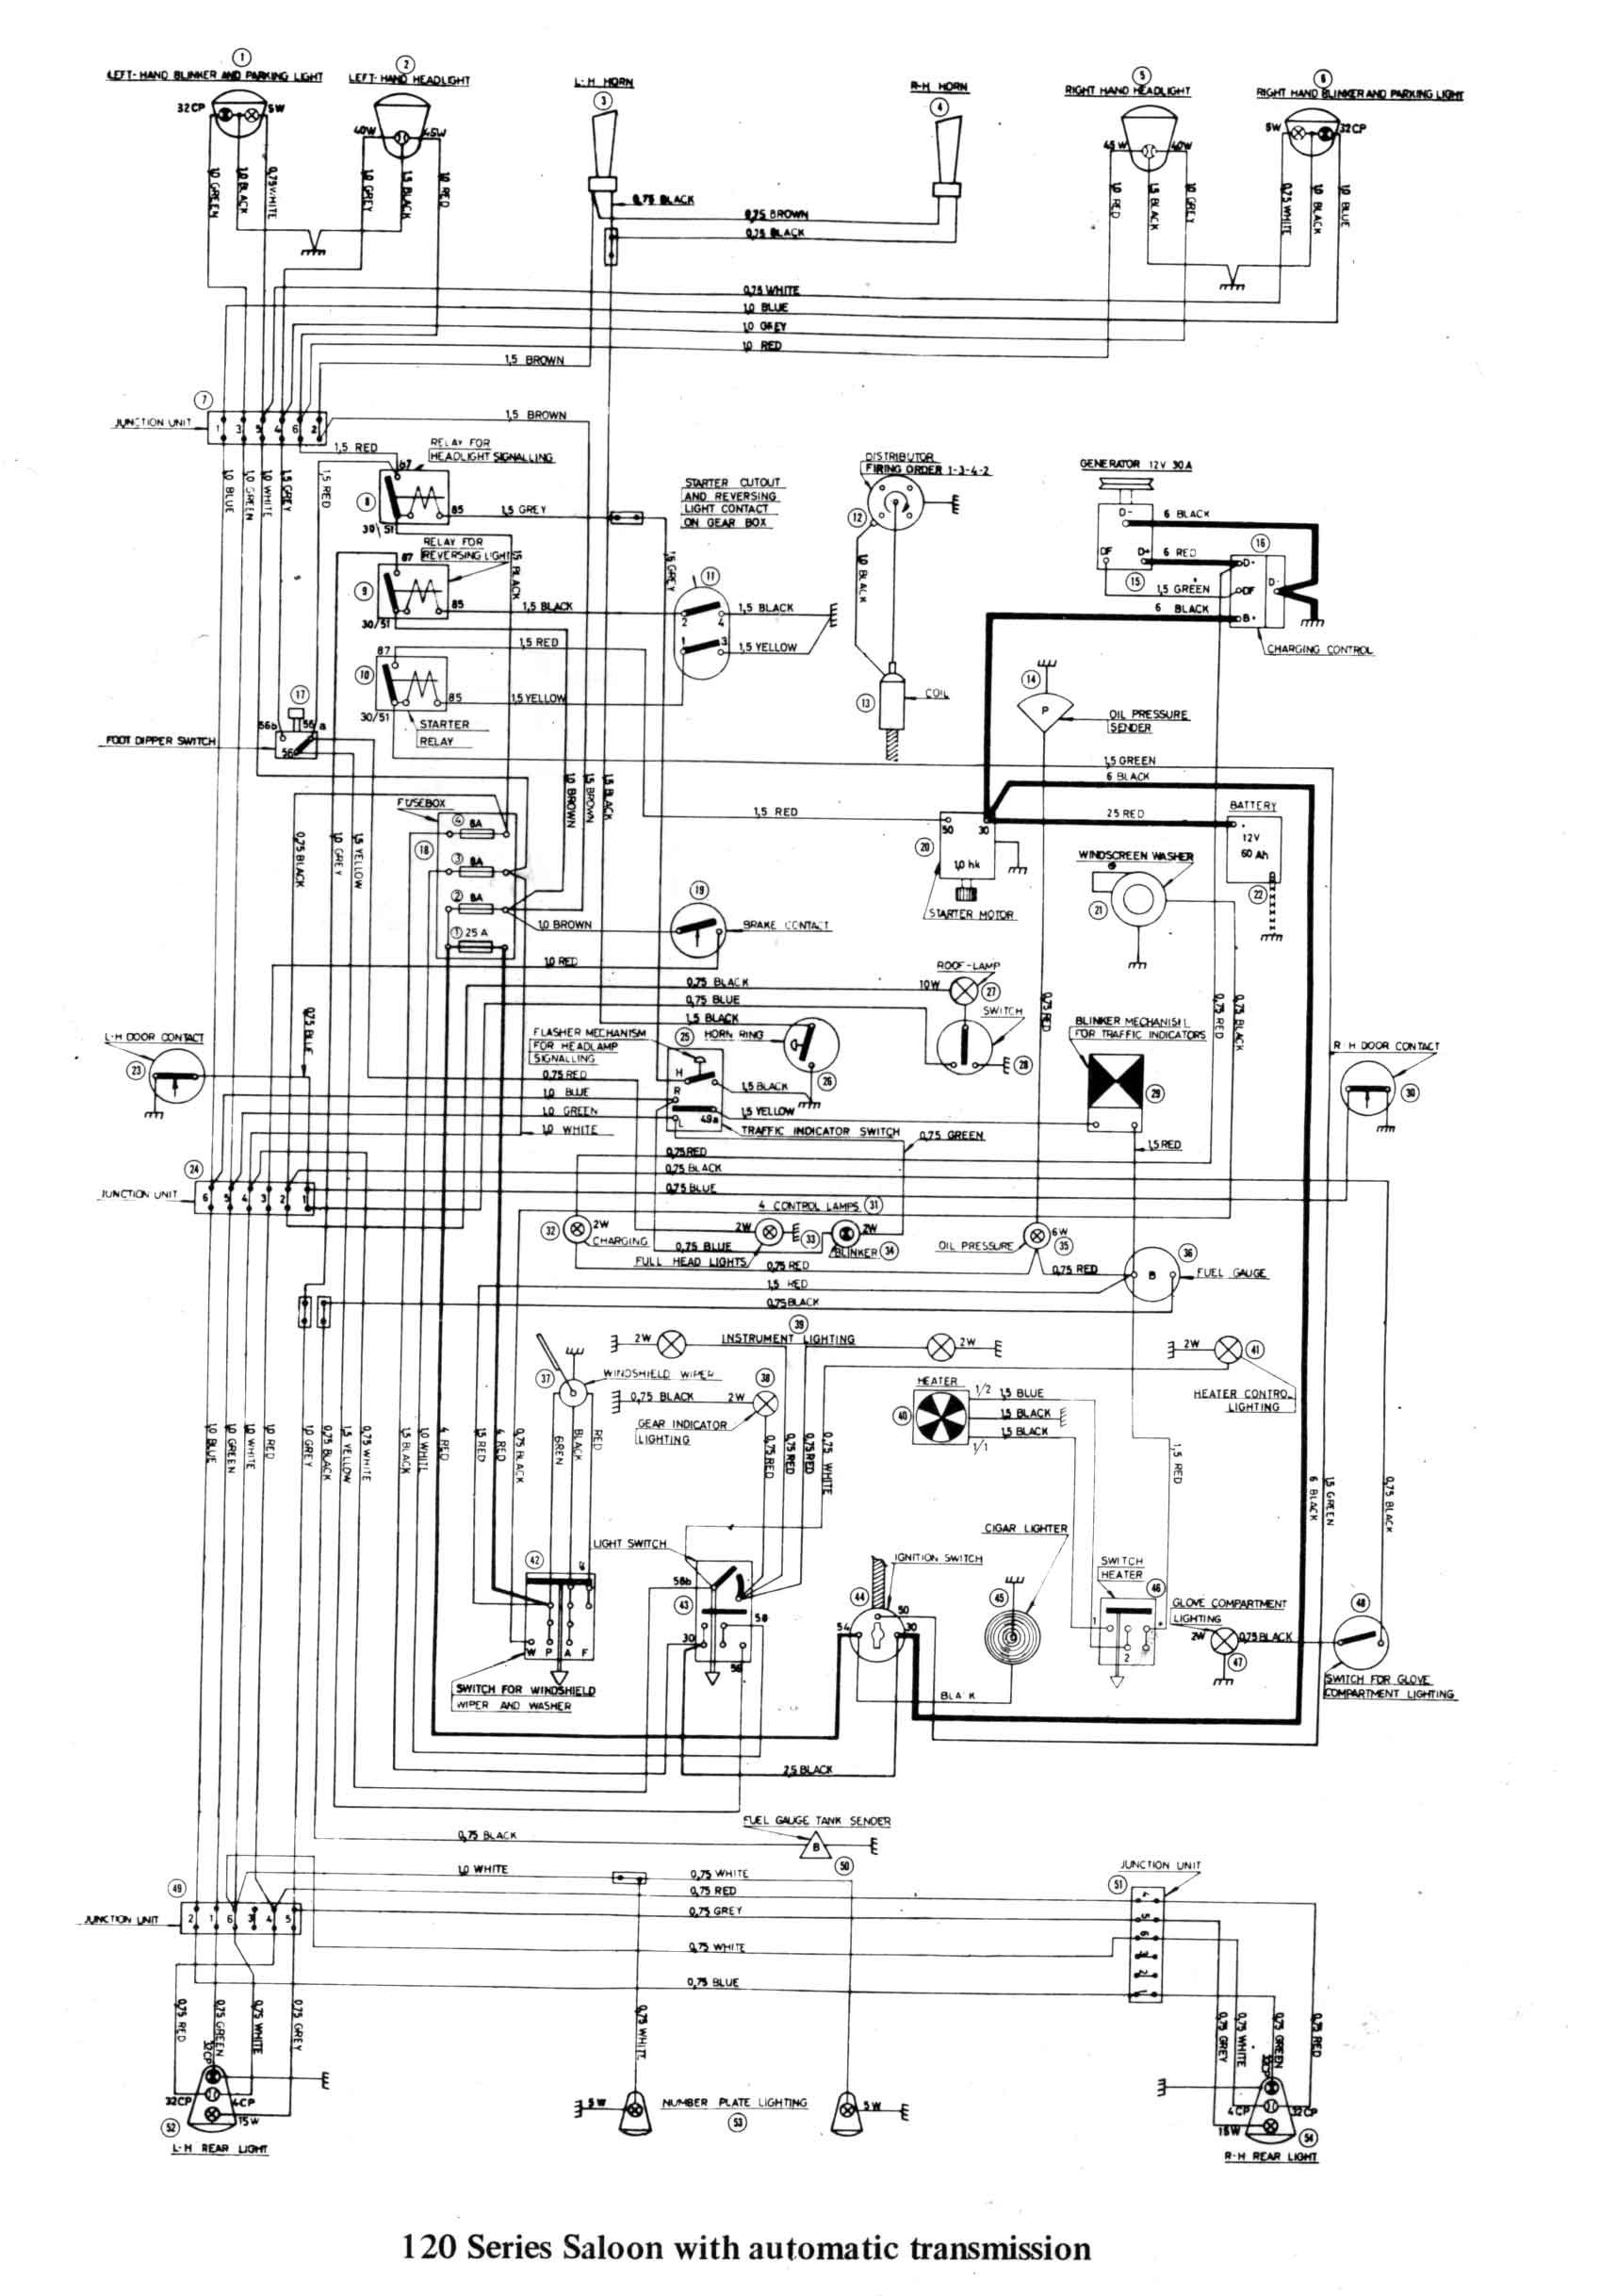 1998 Volvo V70 Engine Diagram Interesting Info About Volvo Raleigh with Cool Gallery Of 1998 Volvo V70 Engine Diagram S80